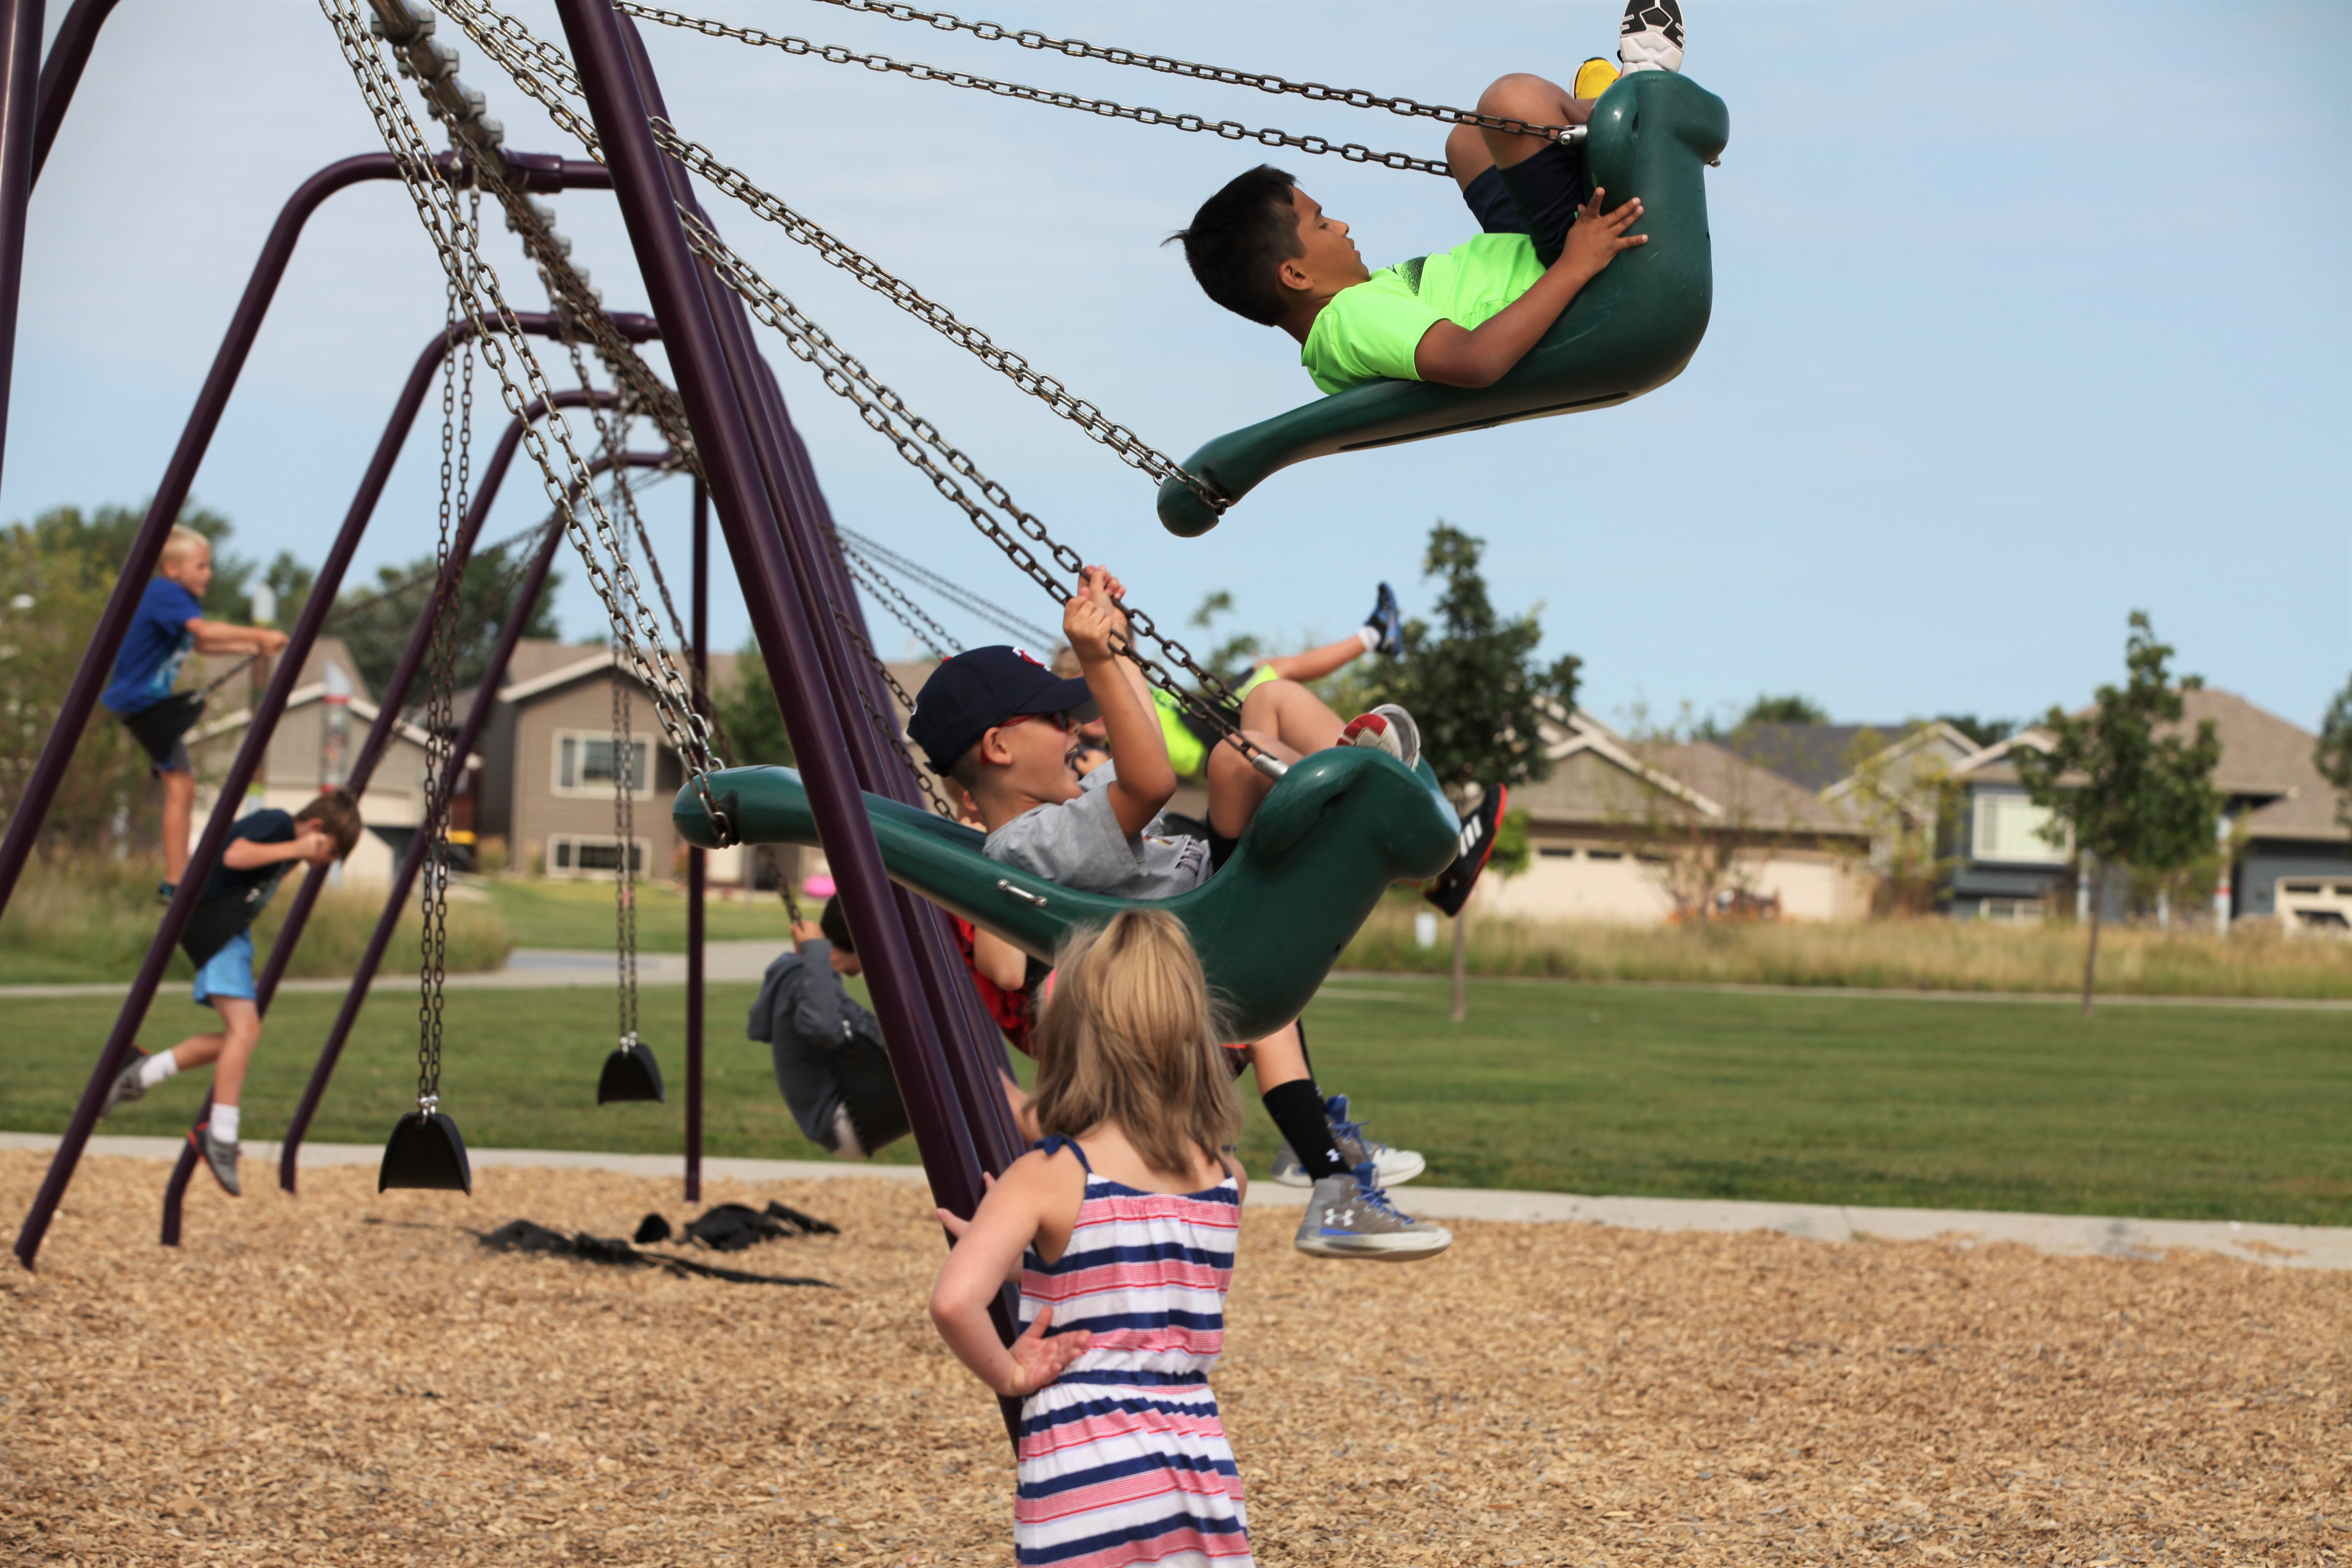 Thousands of South Dakota children unsupervised due to lack of funding, care options | Argus Leader